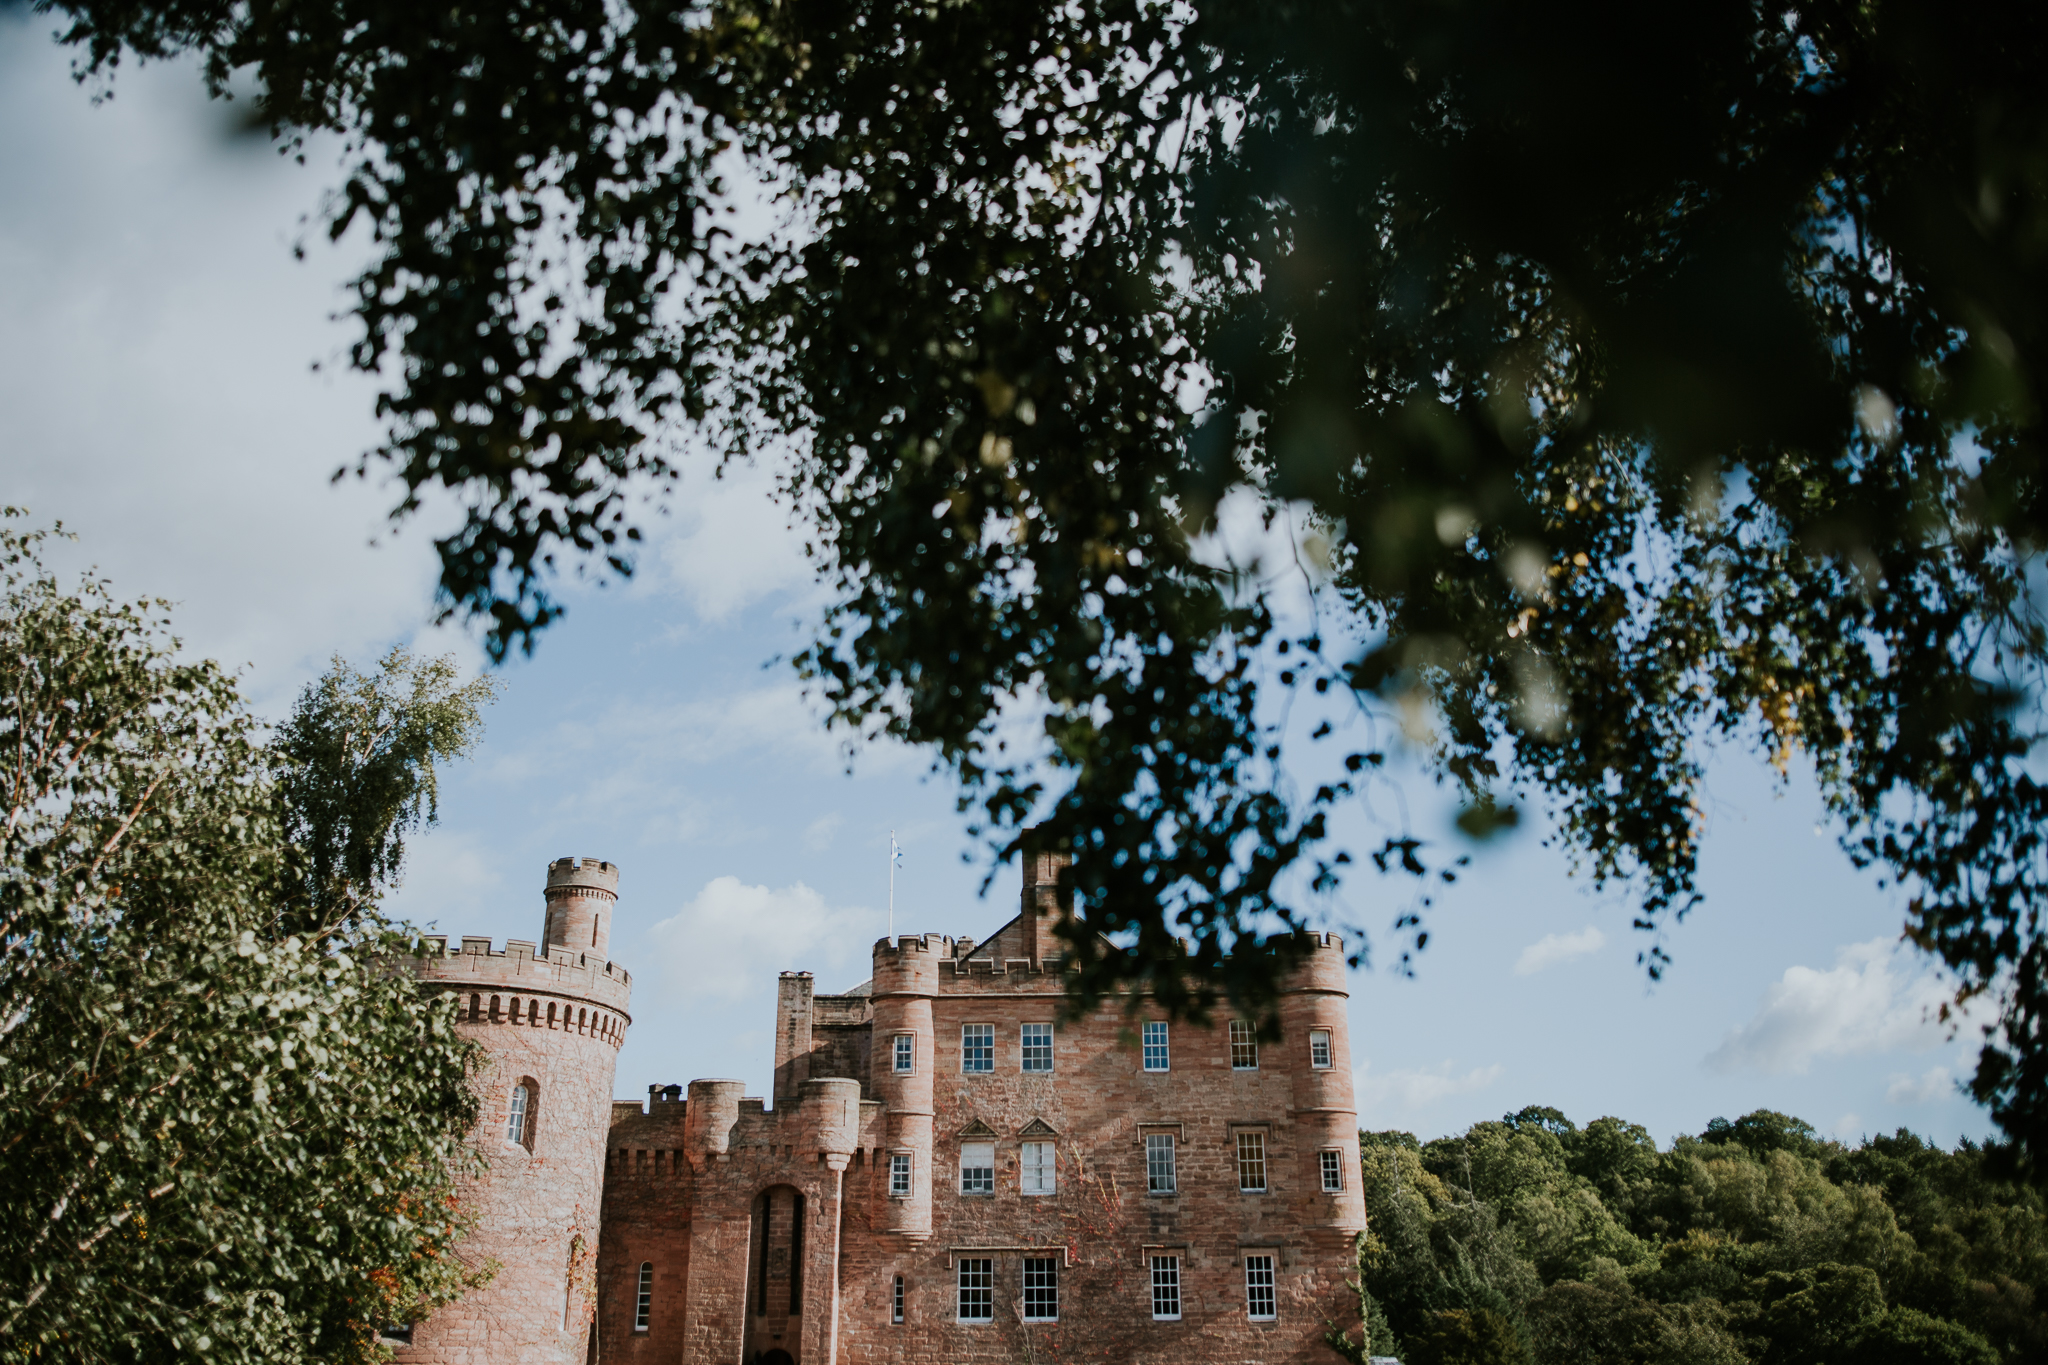 Dalhousie castle. Edinburgh and Lothians area.